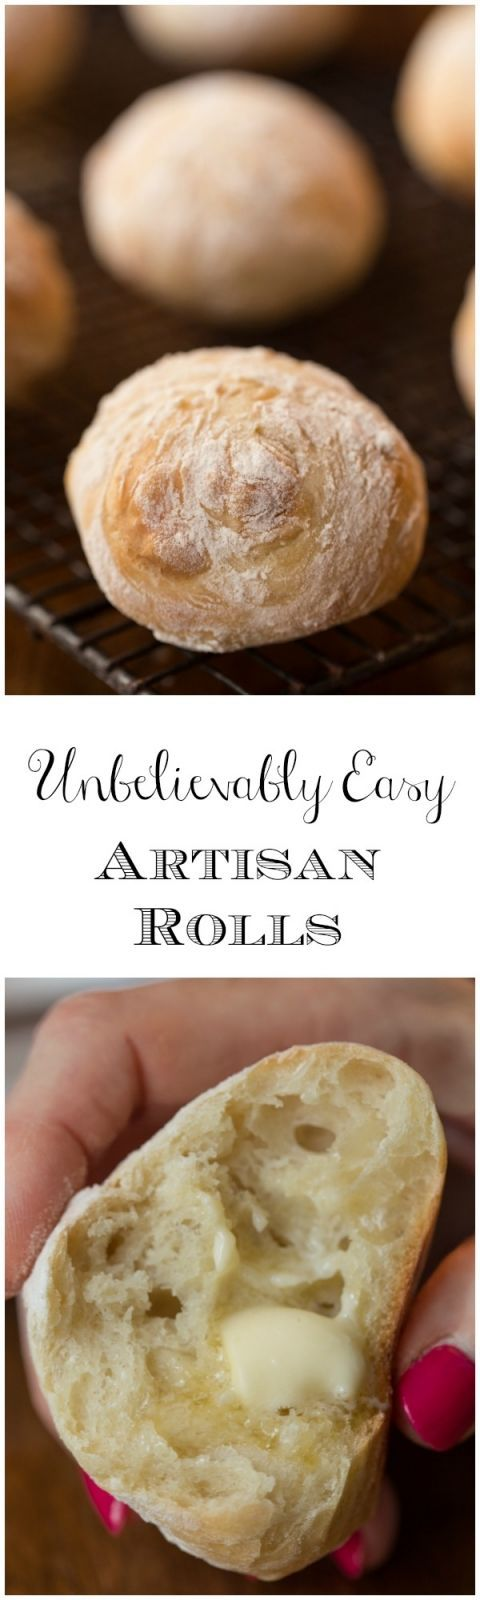 Easy Artisan Rolls These easy artisan rolls truly are unbelievably easy. Stir up the dough then go enjoy a good sleep. In the morning, shape and bake. Unbelievably delicious too!These easy artisan rolls truly are unbelievably easy. Stir up the dough then go enjoy a good sleep. In the morning, shape and bake. Unbelievably delicious too!